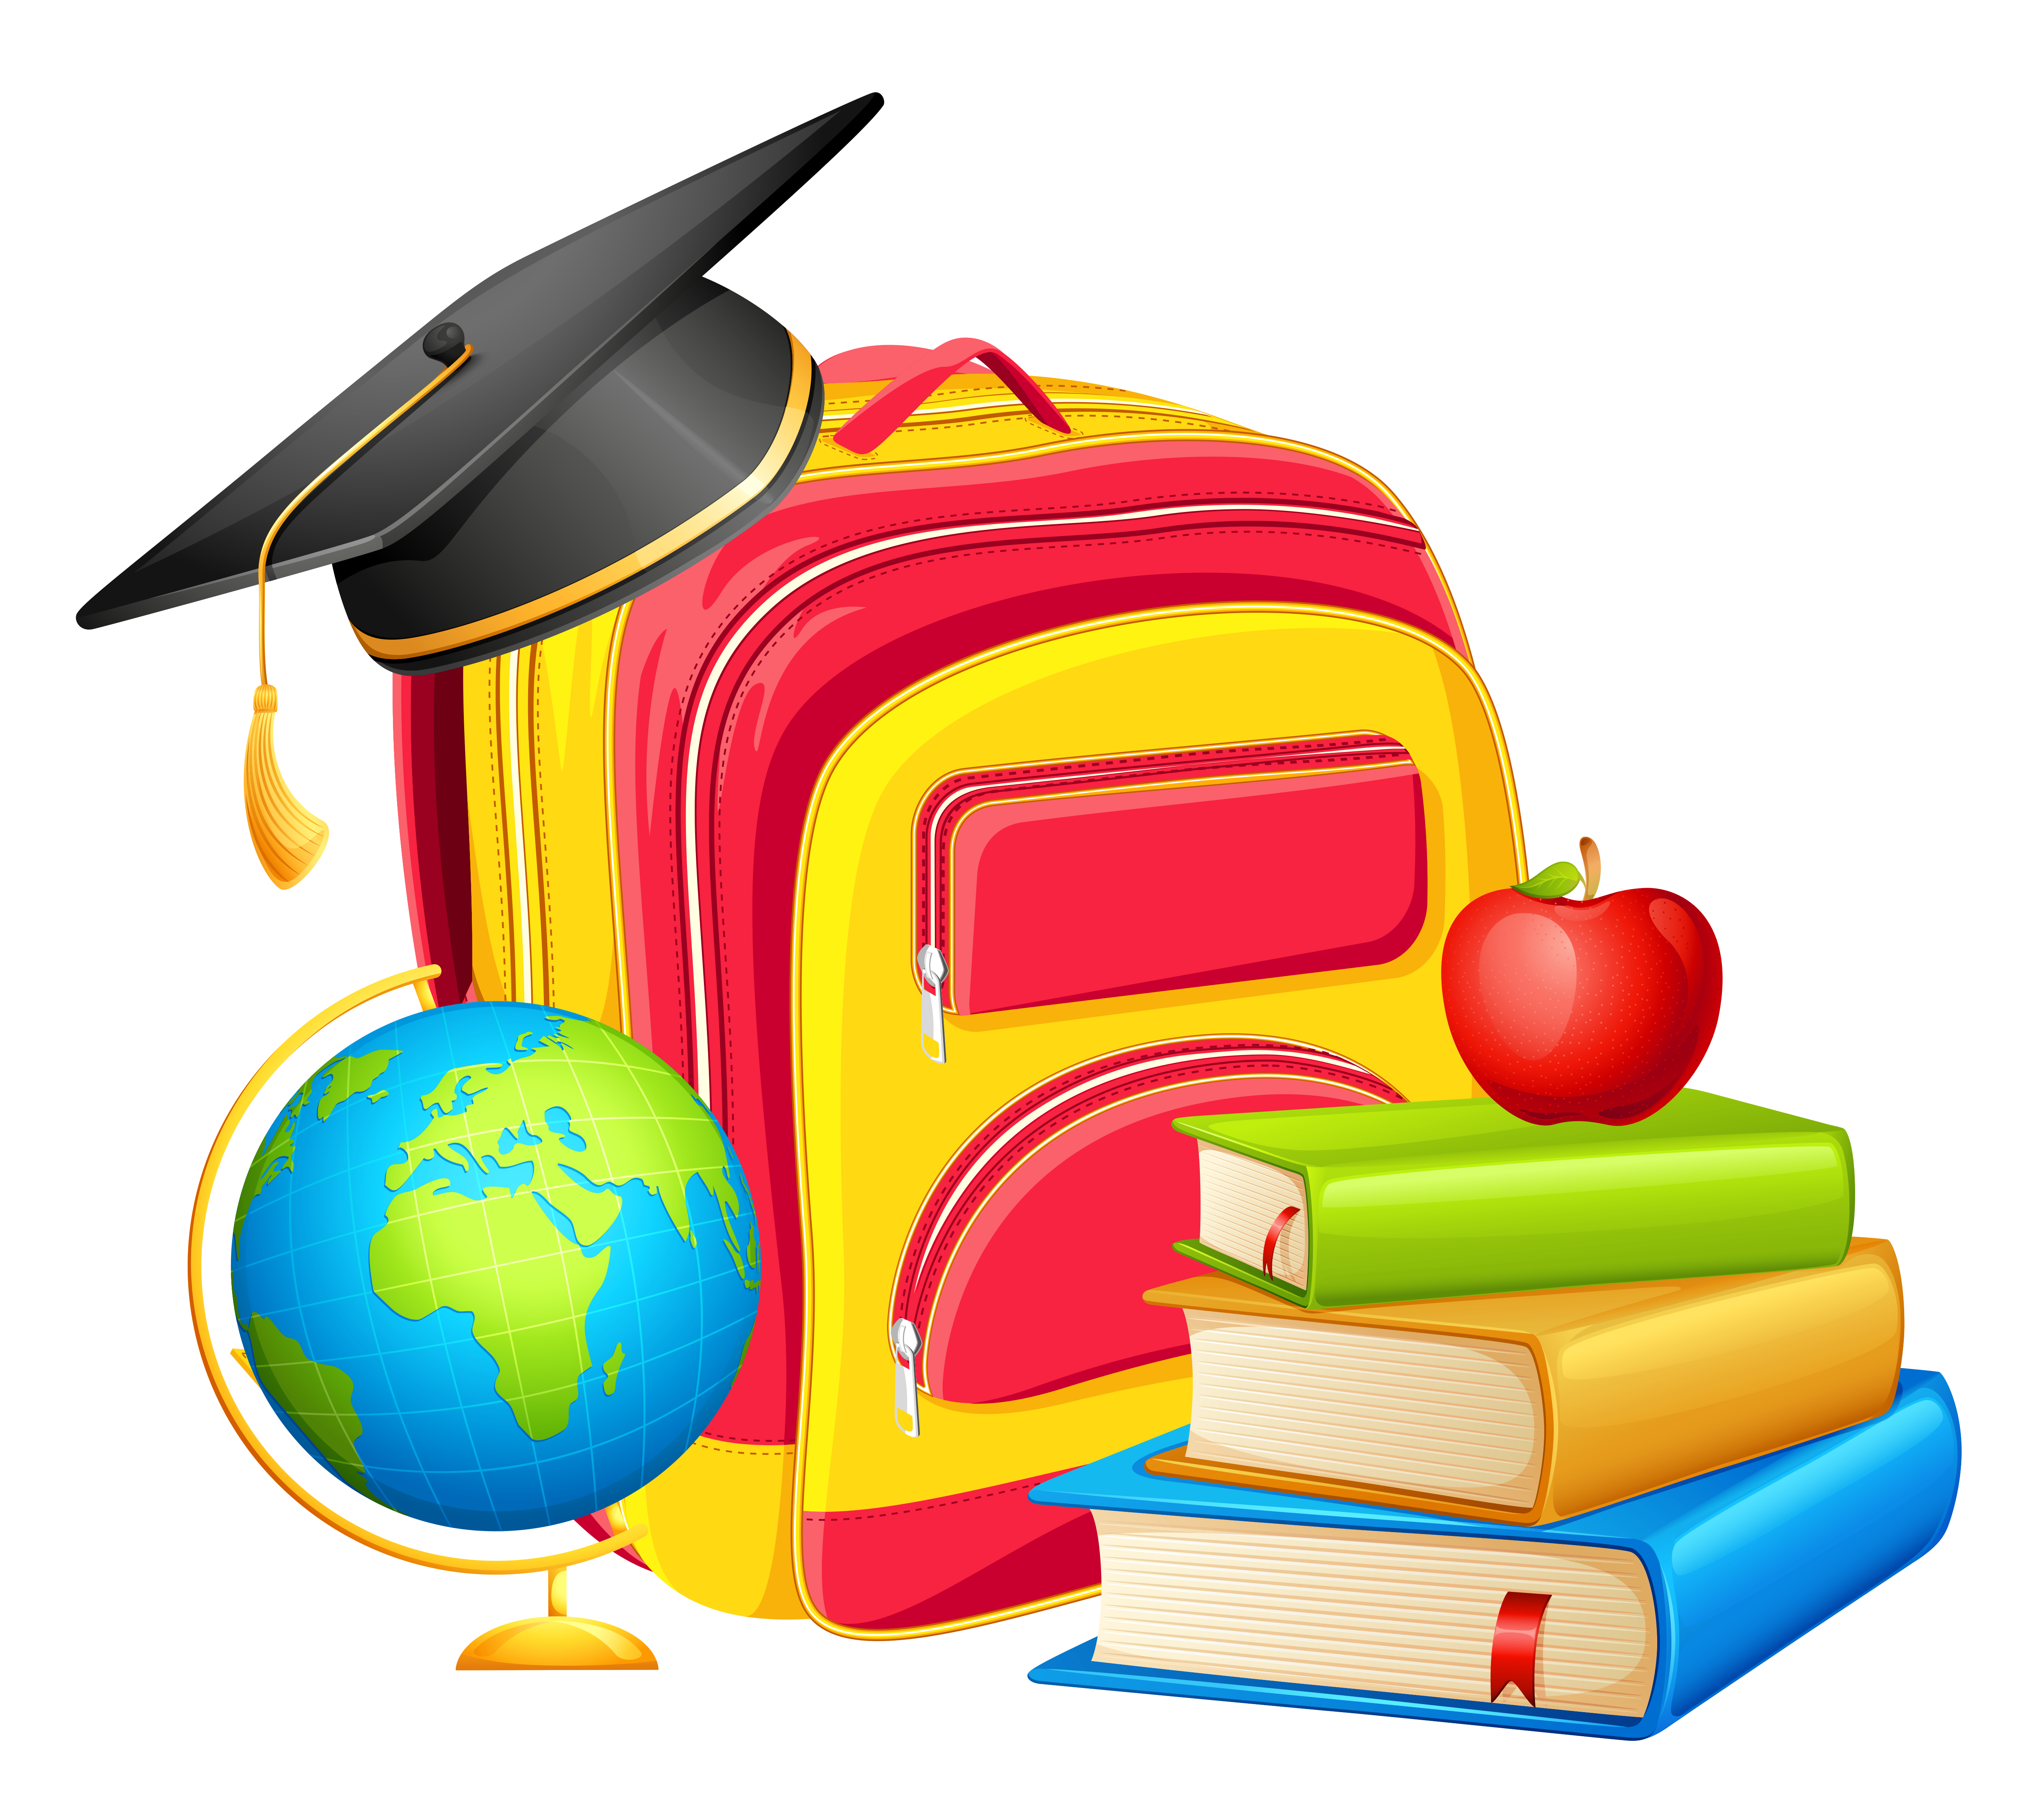 Back to school backpack clipart picture stock School Backpack Clipart | Free download best School Backpack Clipart ... picture stock